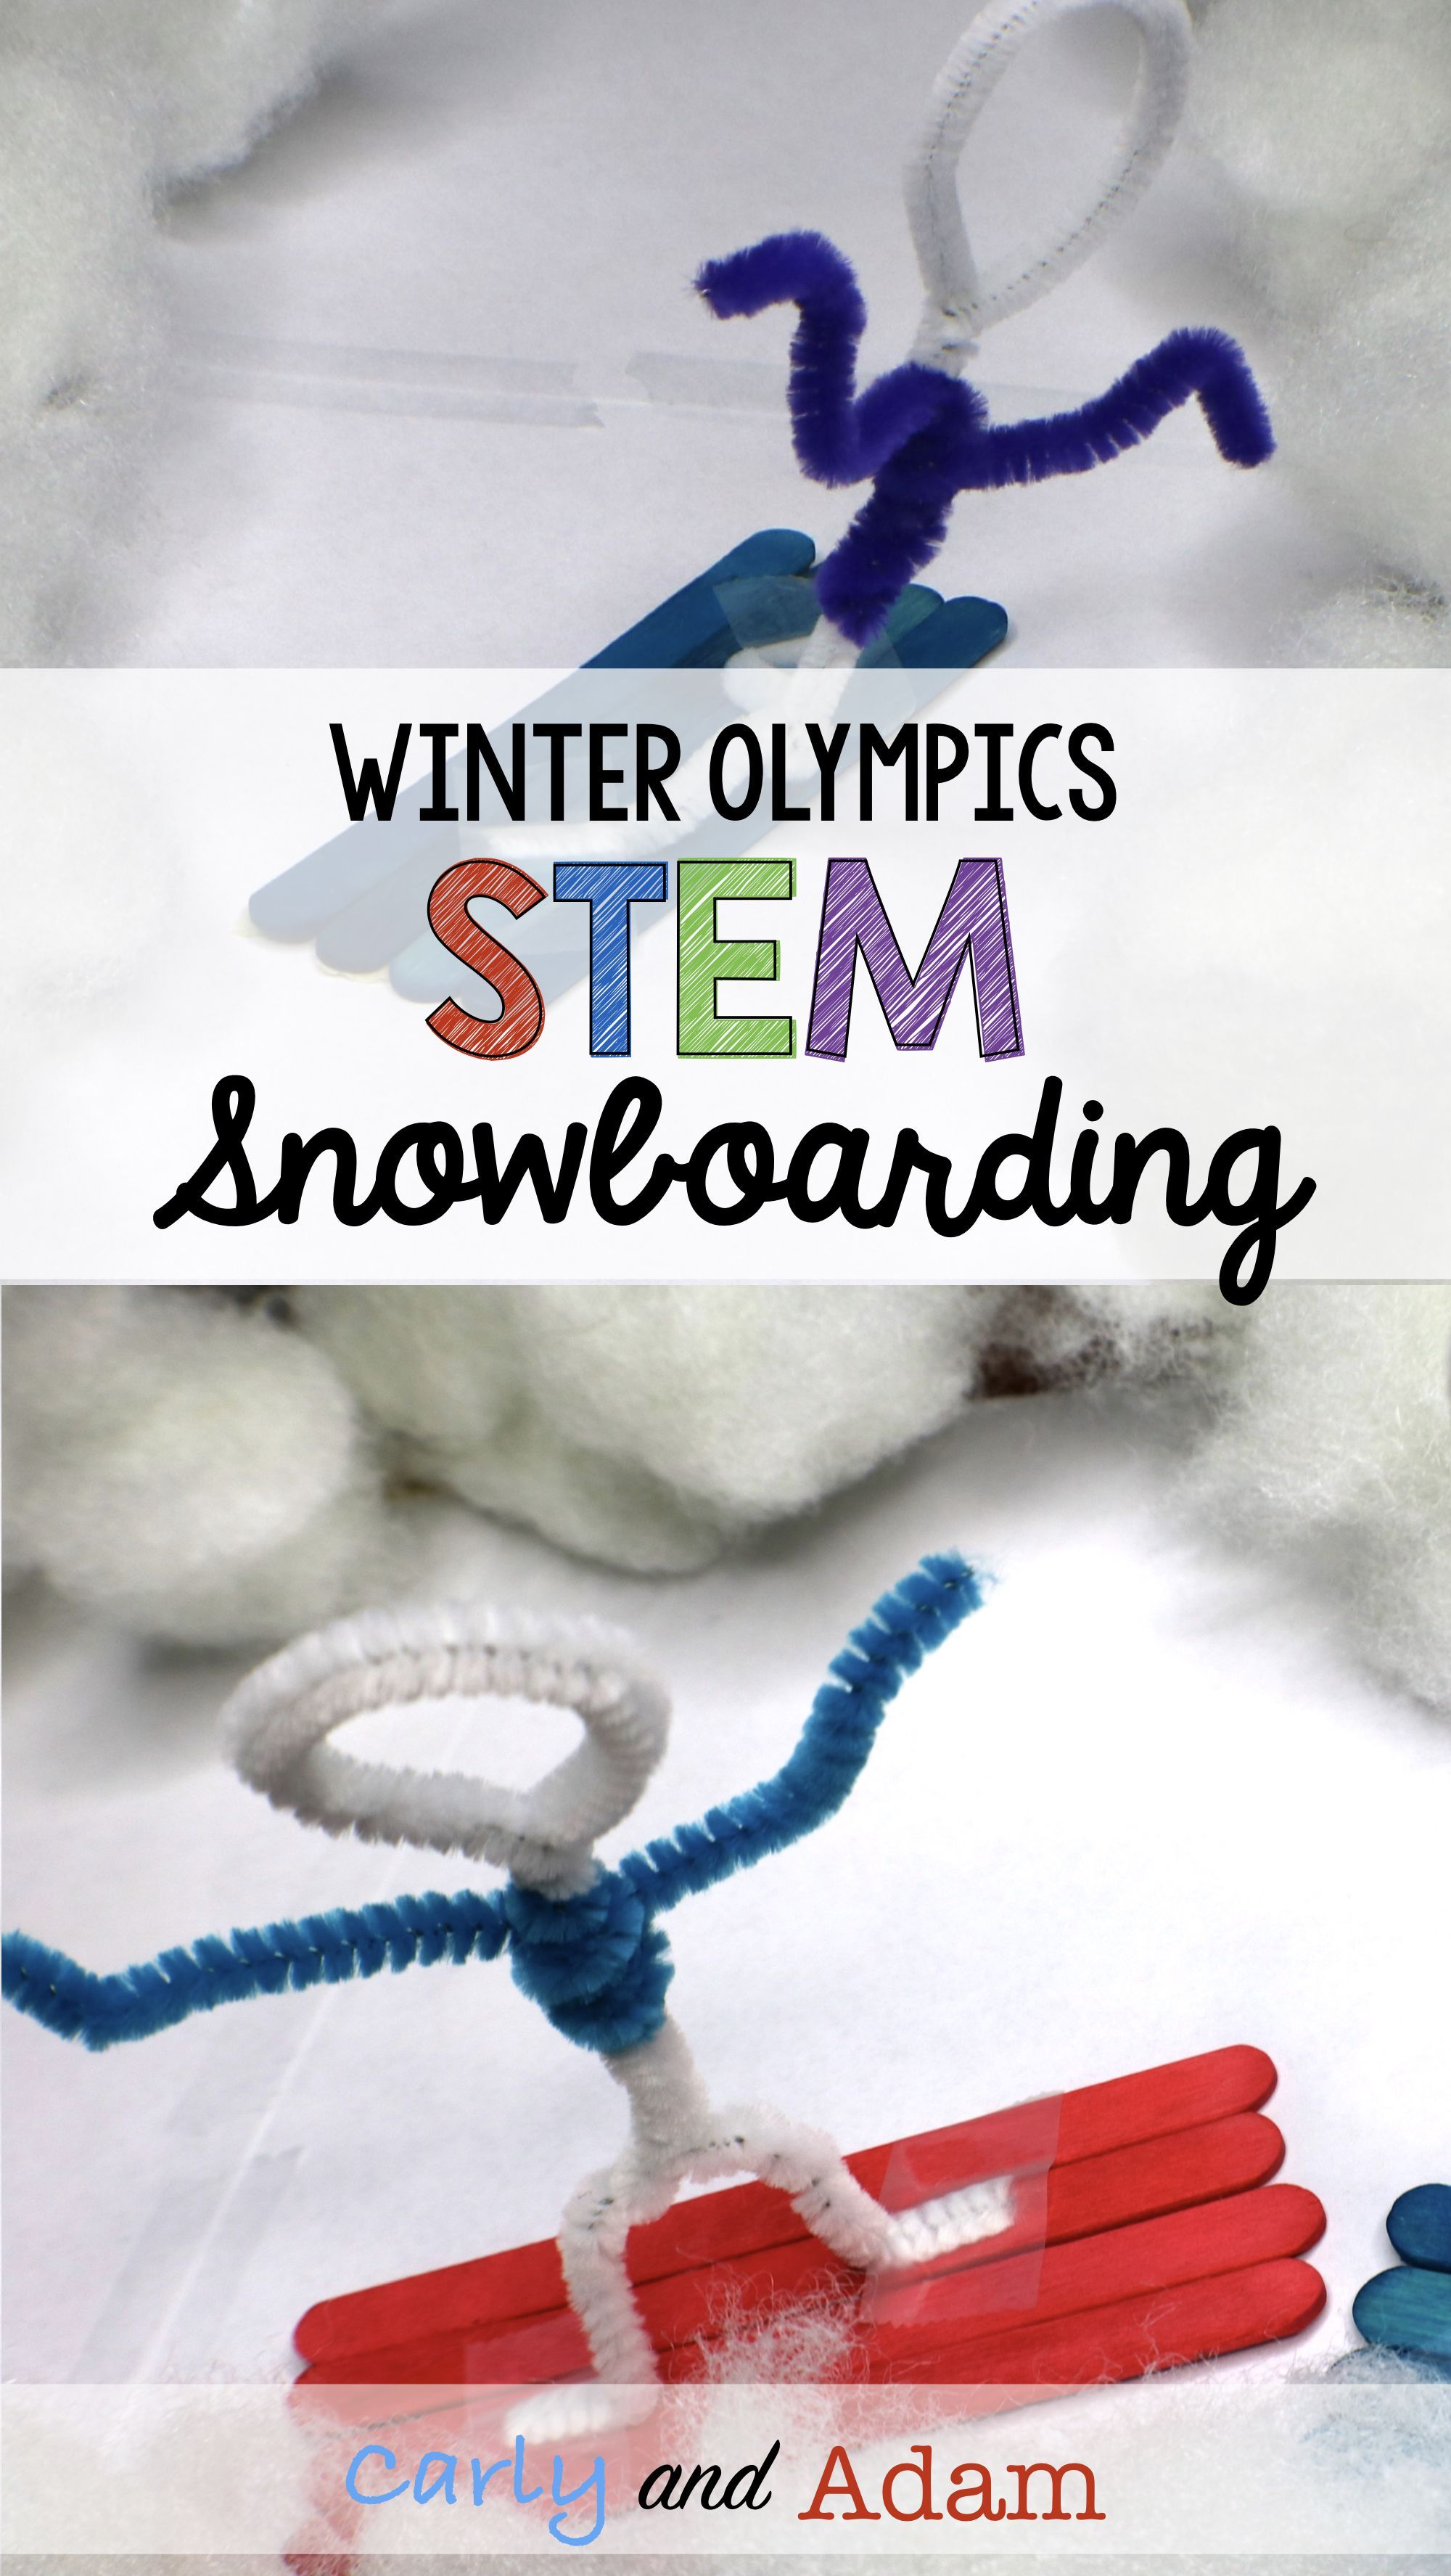 Winter Games Snowboarding Stem Activity